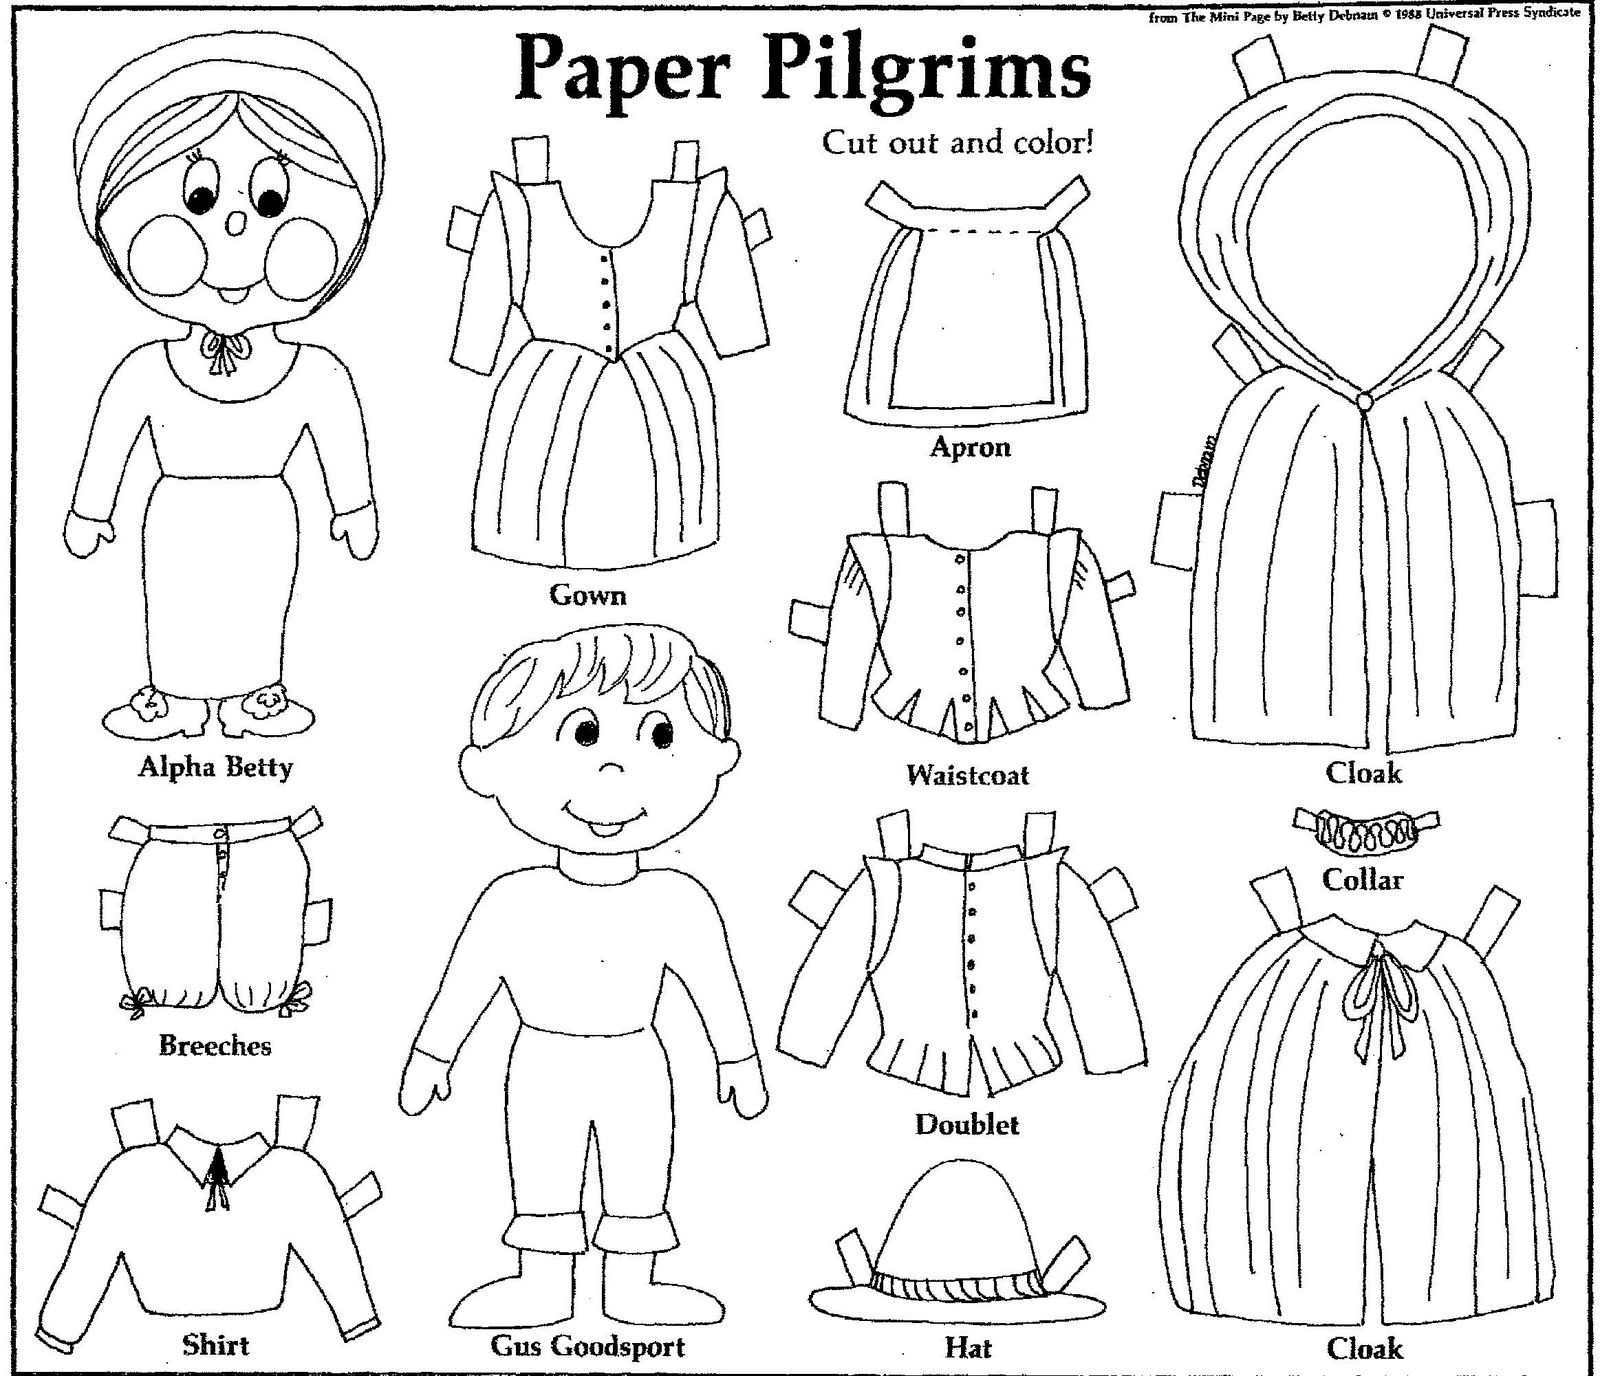 Mostly Paper Dolls: PAPER PILGRIMS to Cut Out and Color! 1988 ...